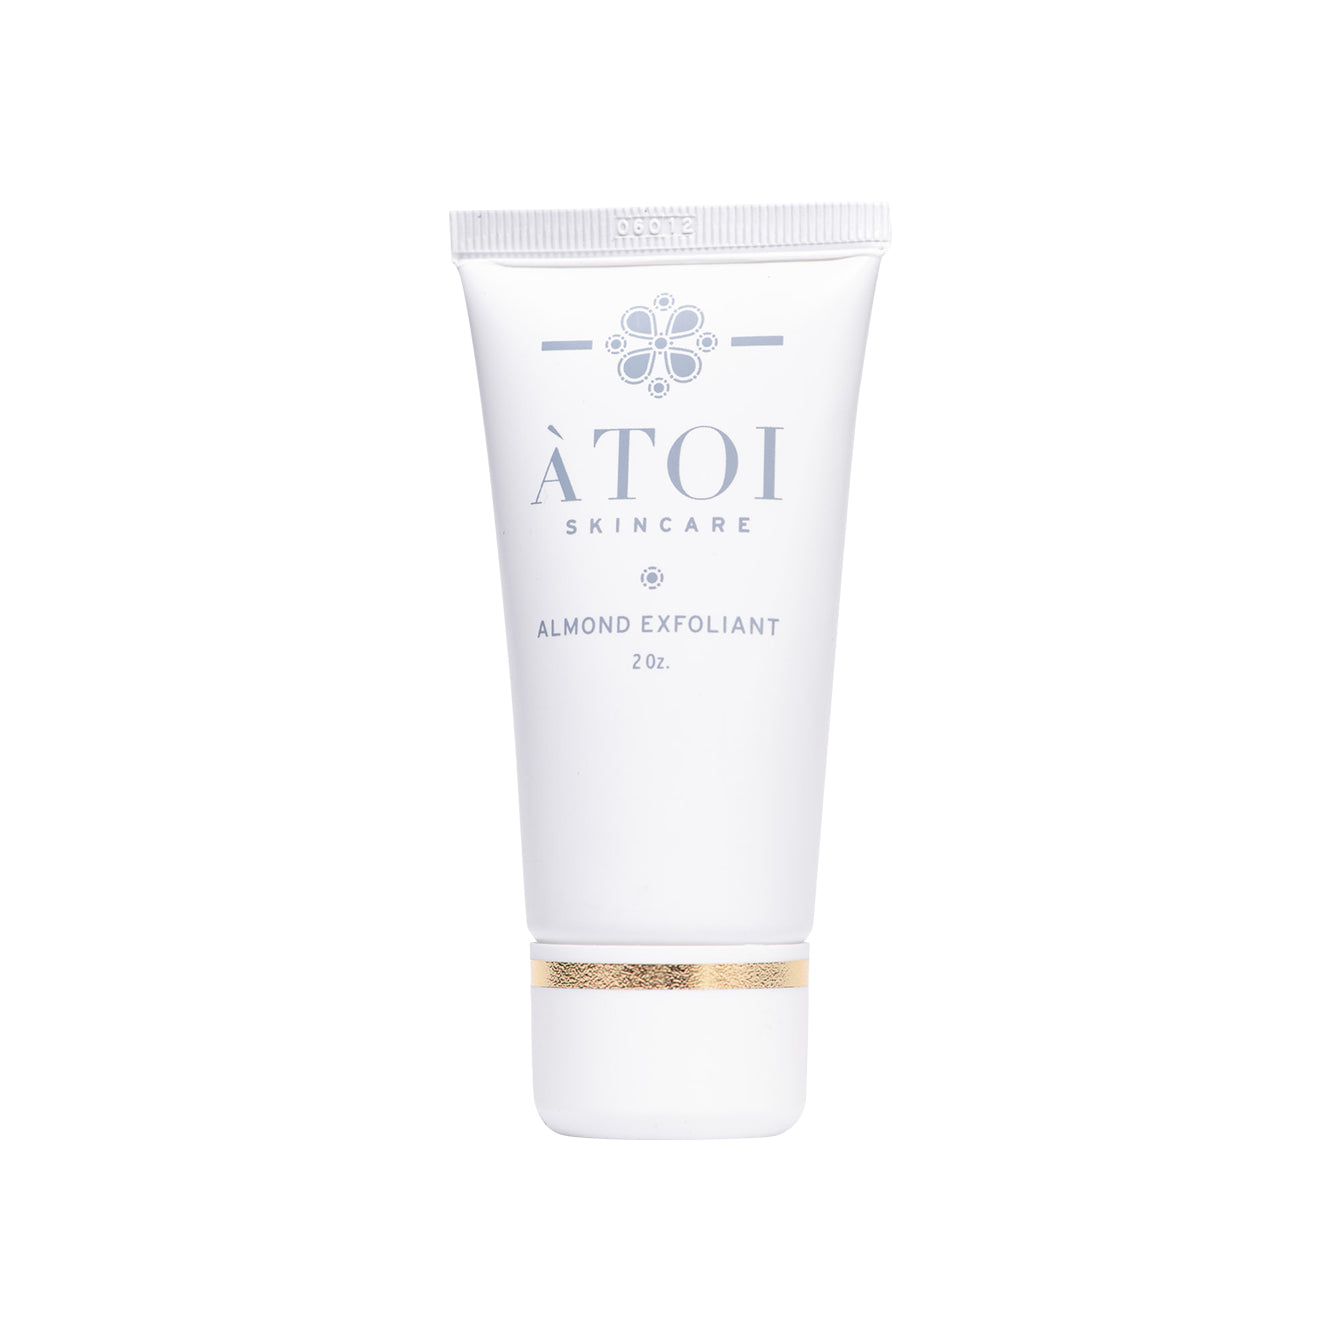 Almond Exfoliant (2 oz.)